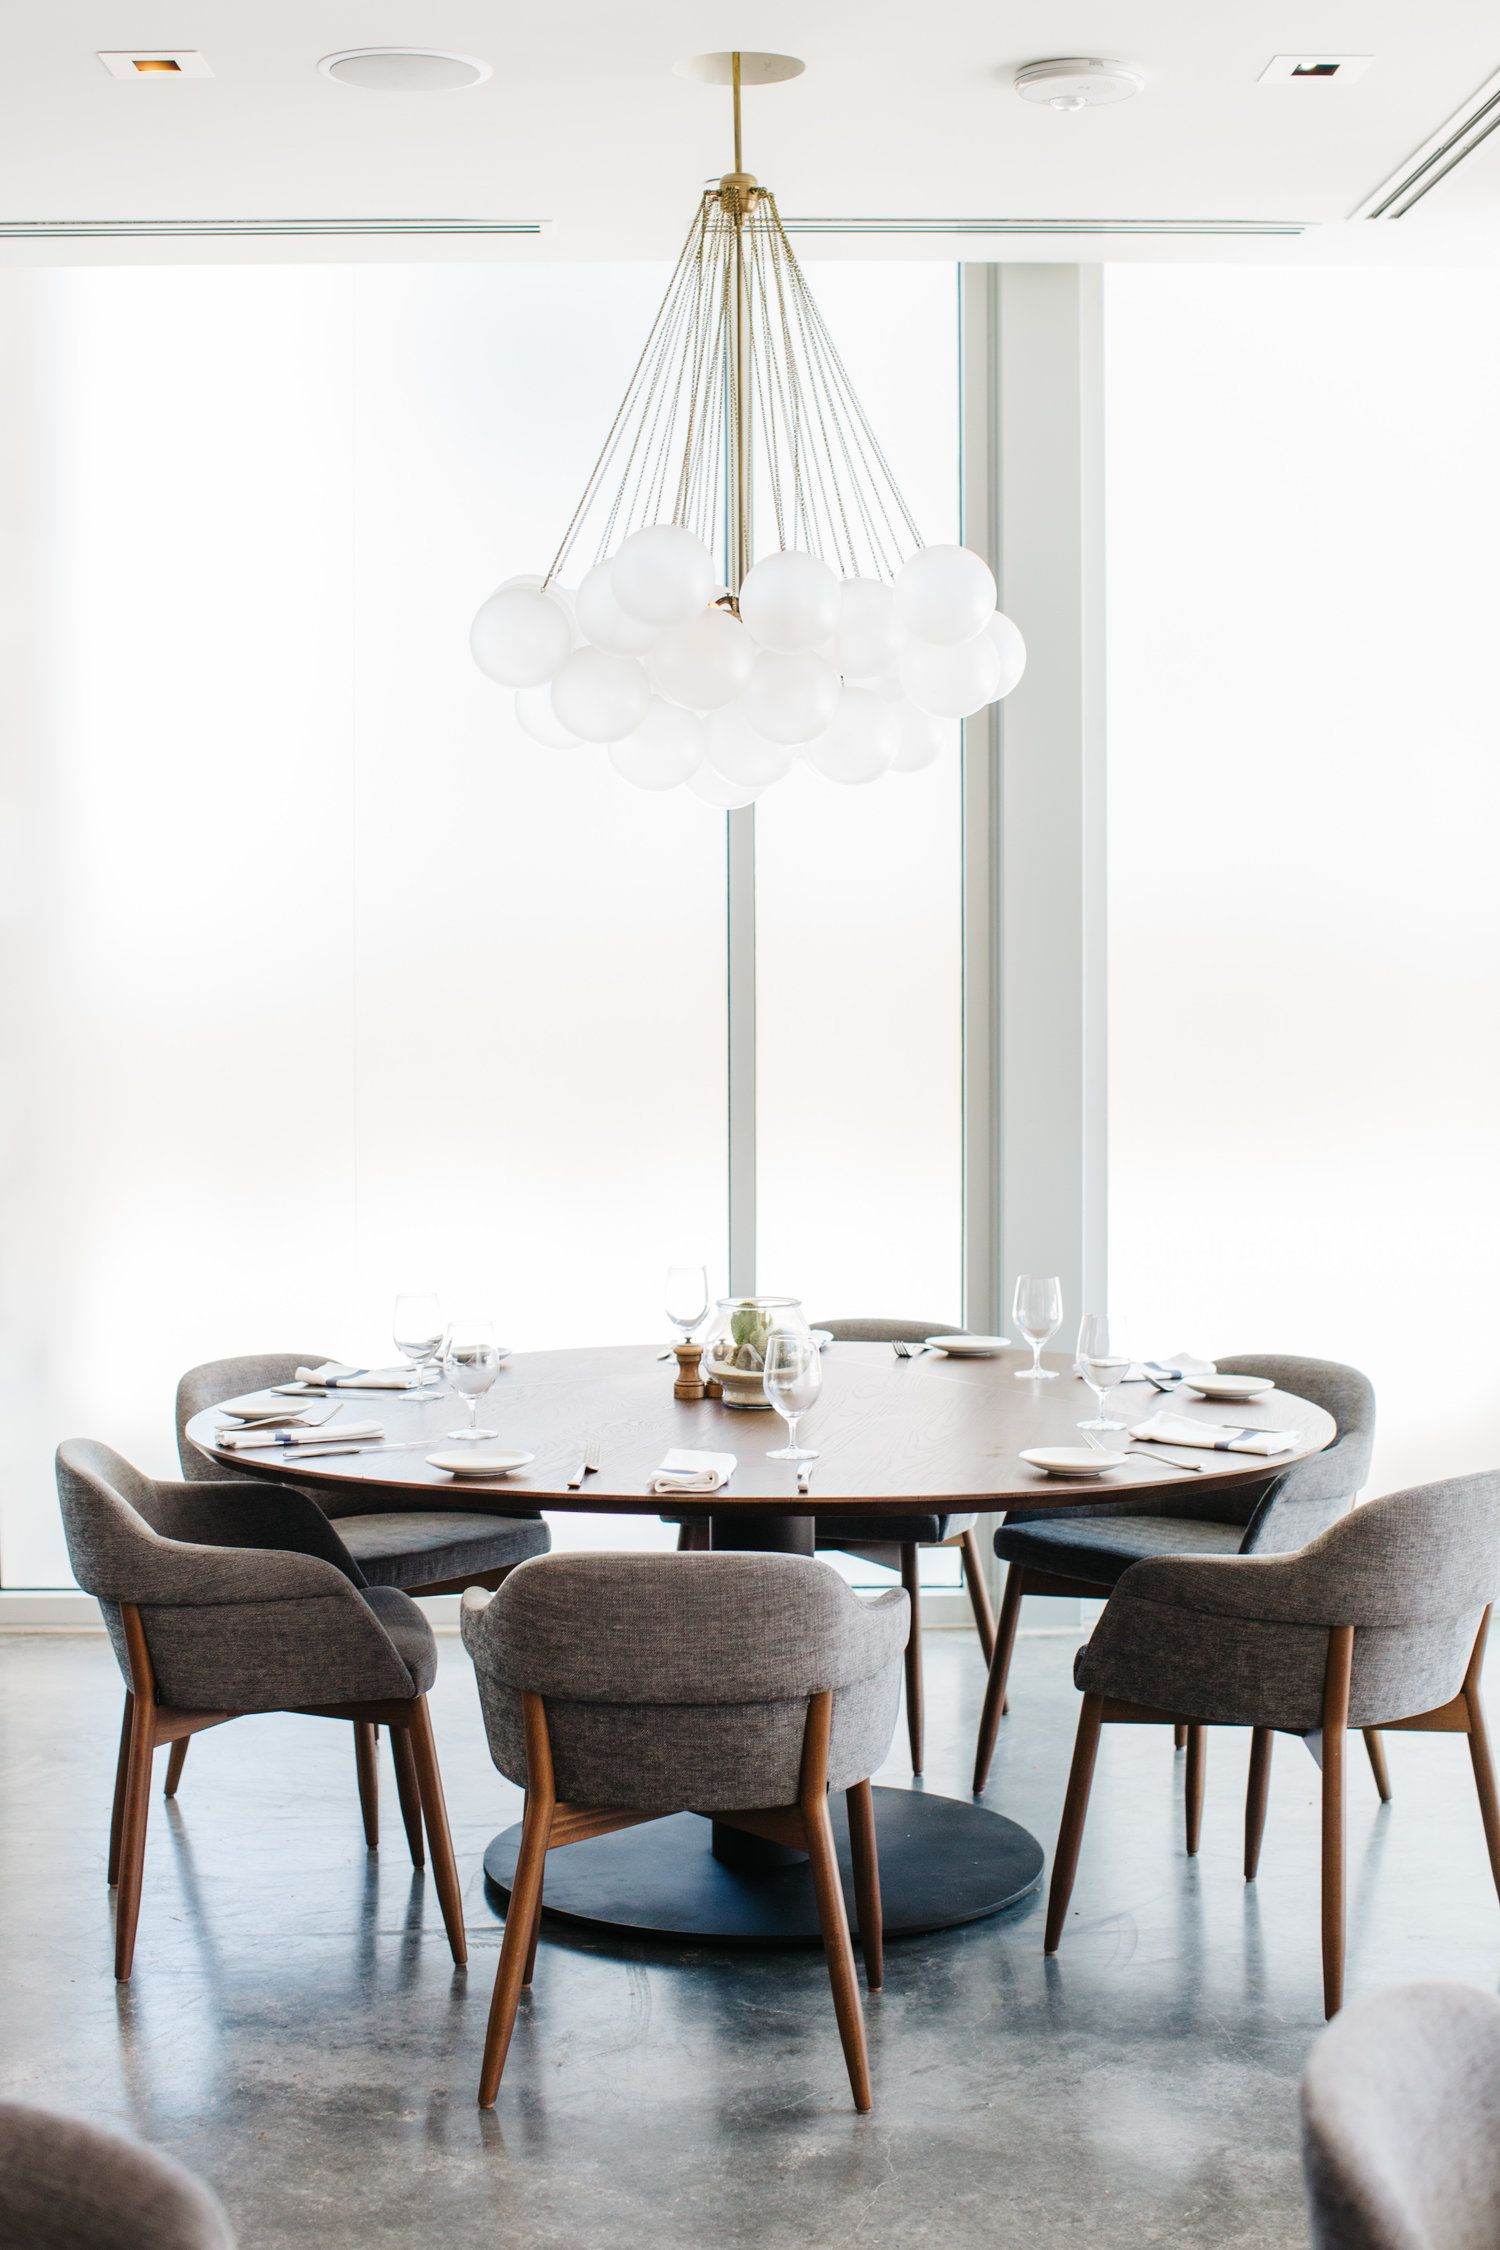 Paradise Valley Staycation Modern Dining Chairs Dining Table